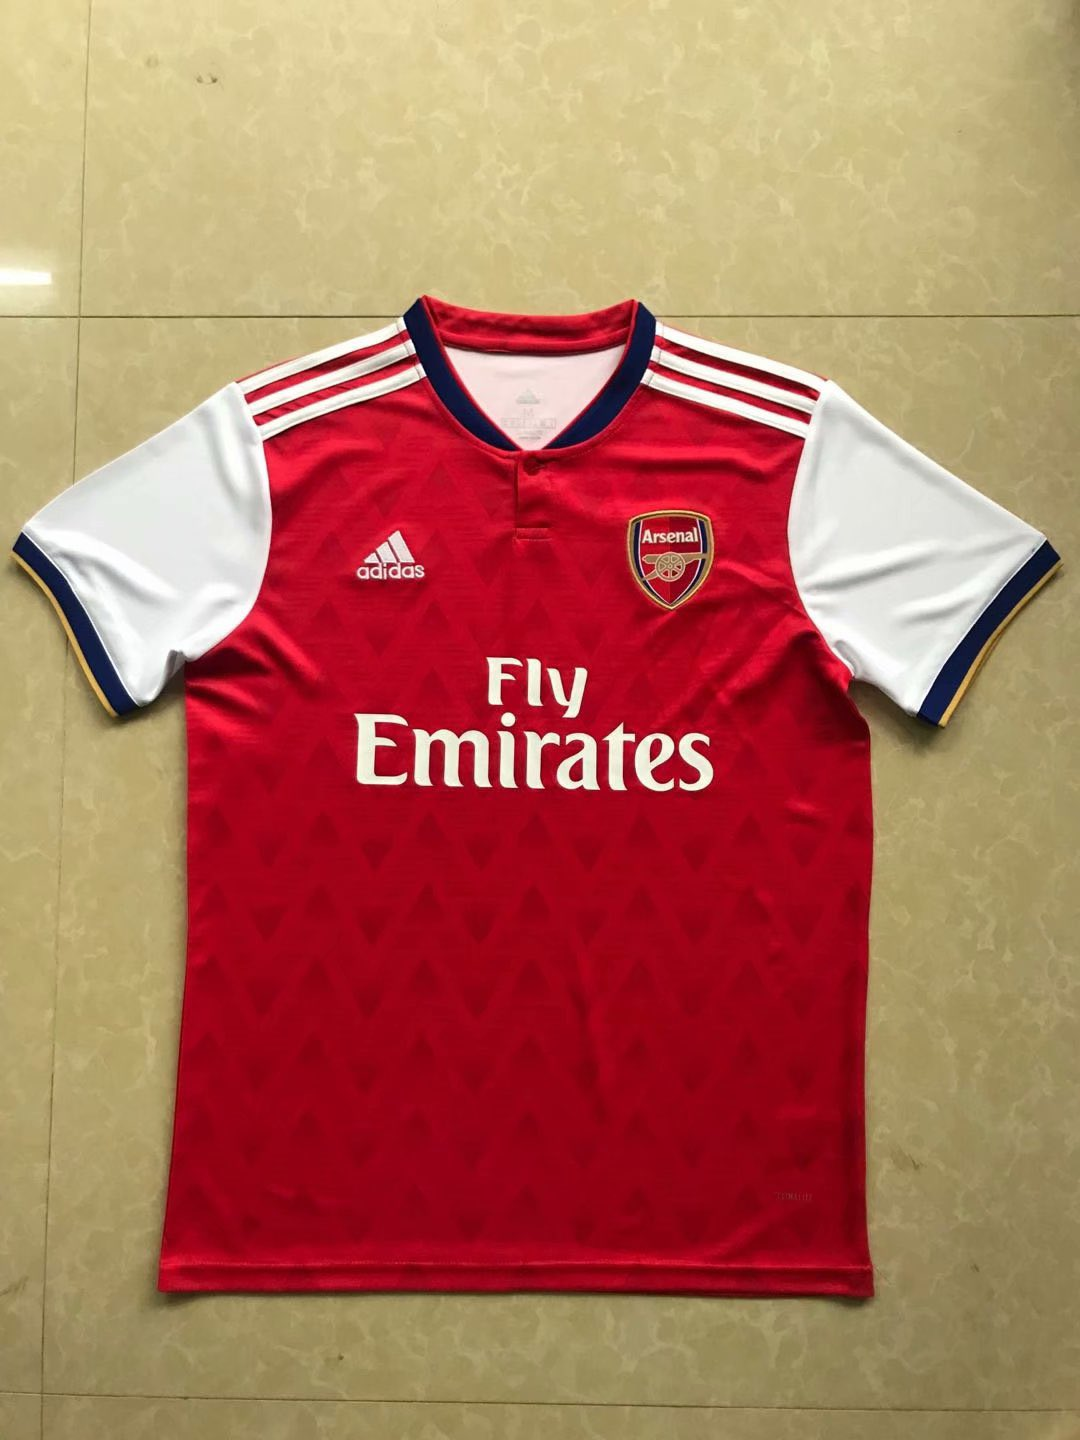 New Arsenal adidas kits: Launch date, leaked images of home